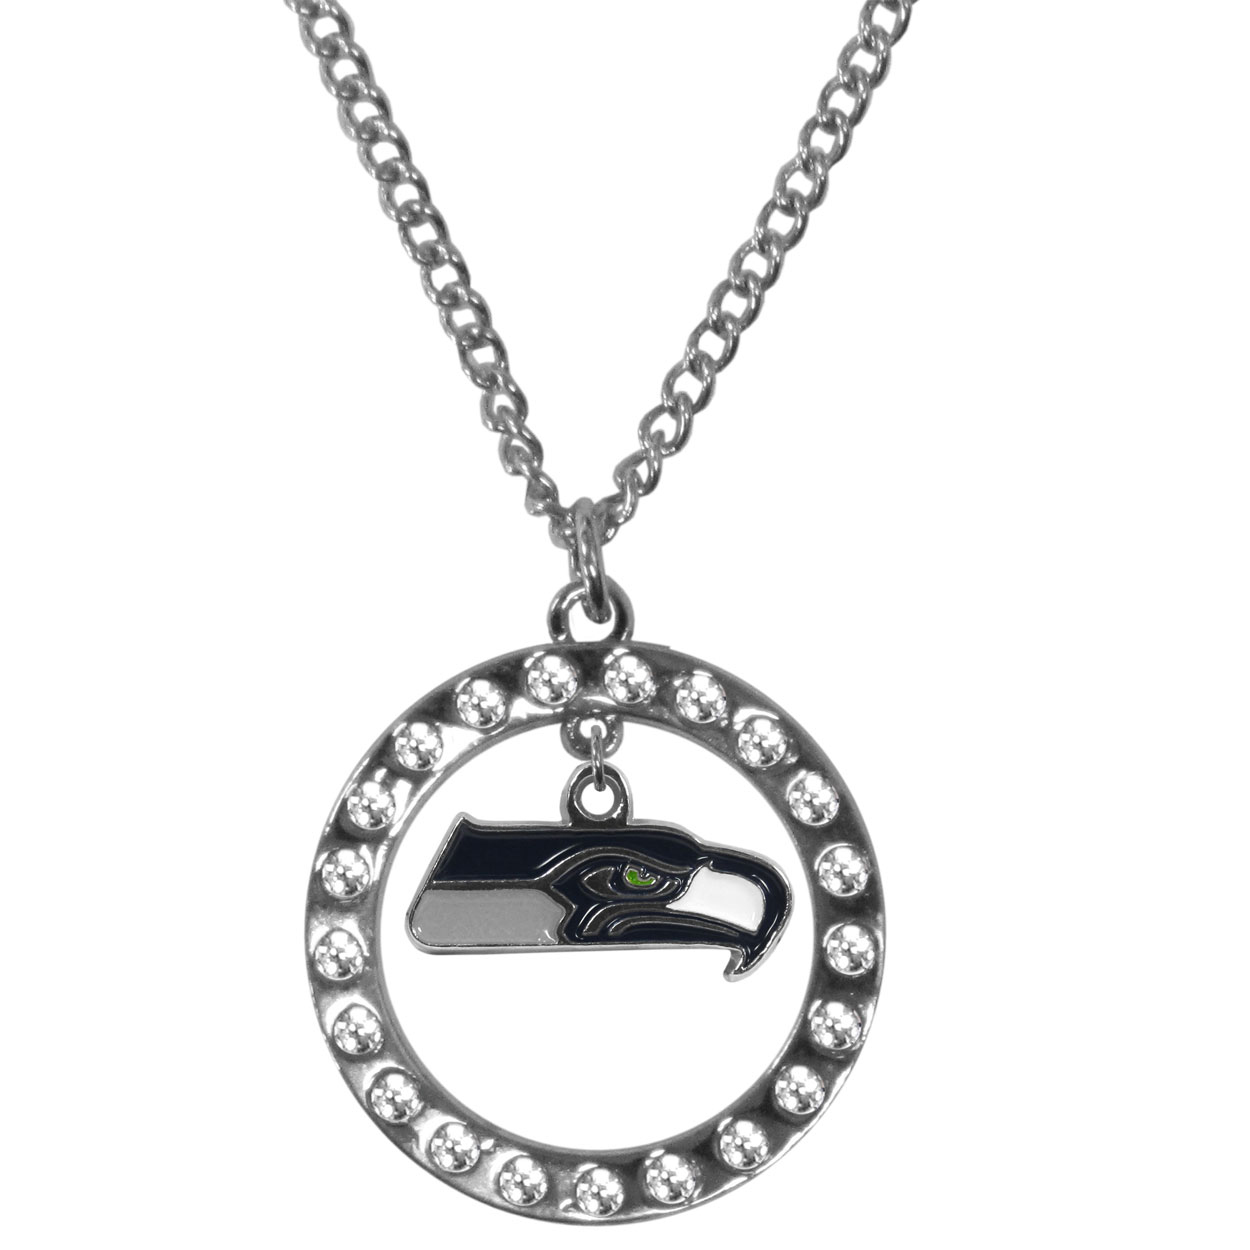 Seattle Seahawks Rhinestone Hoop Necklaces - Our Seattle Seahawks rhinestone hoop necklace comes on an 18 inch chain and features a hoop covered in rhinestones with a high polish chrome finish and a cast and enameled team charm dangling in the center.